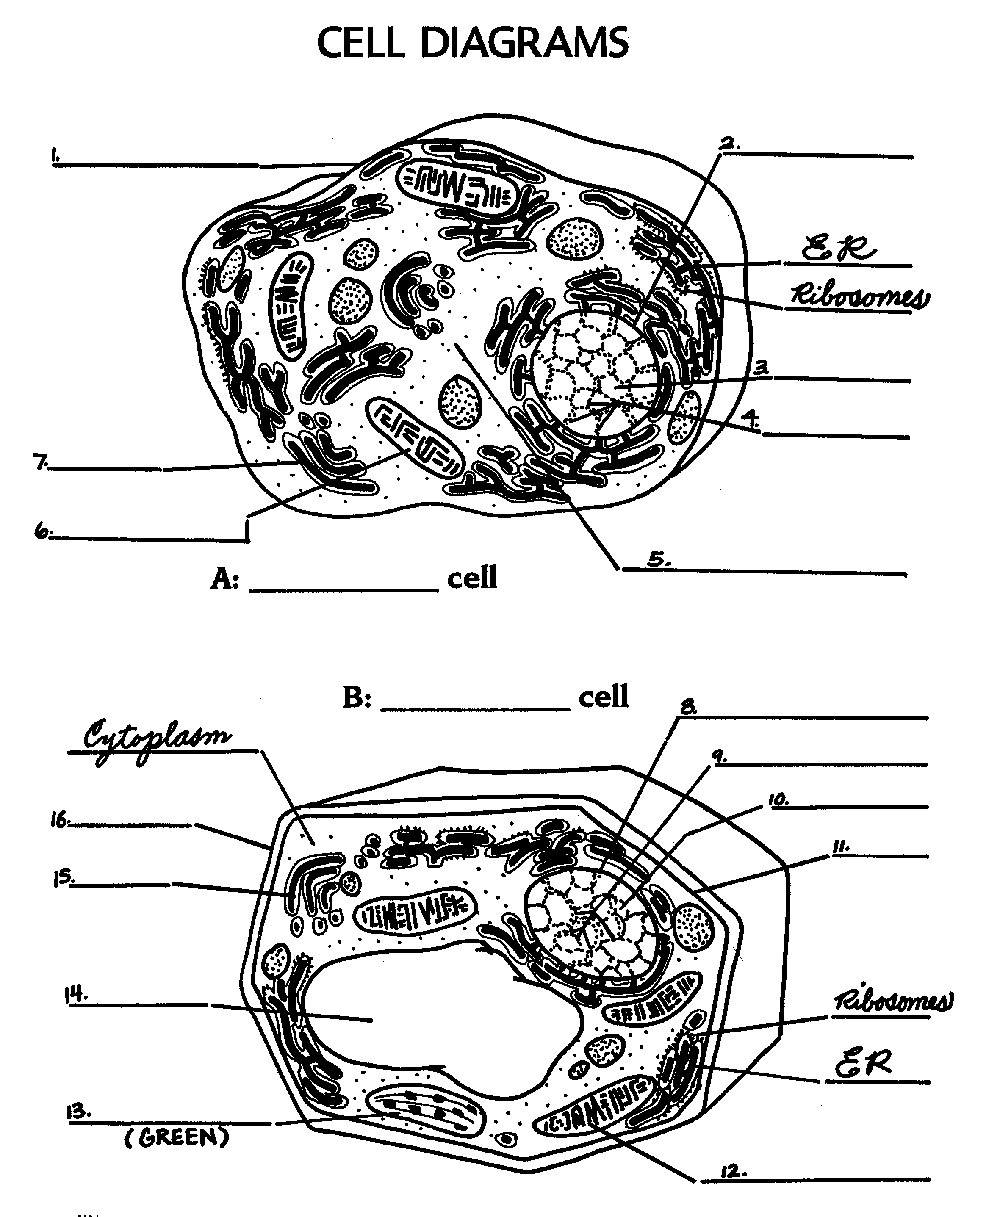 ... cell a bration ec 301 x 389 gif 26kb cell structure worksheet